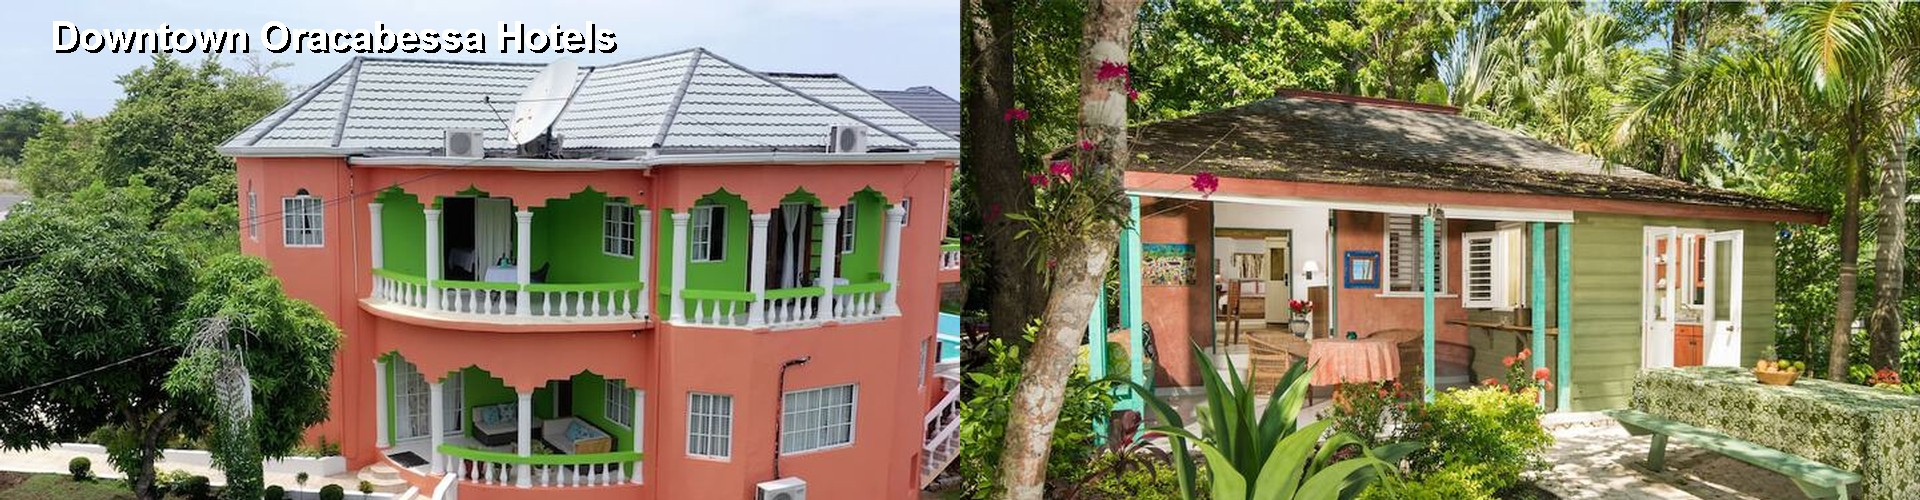 5 Best Hotels near Downtown Oracabessa